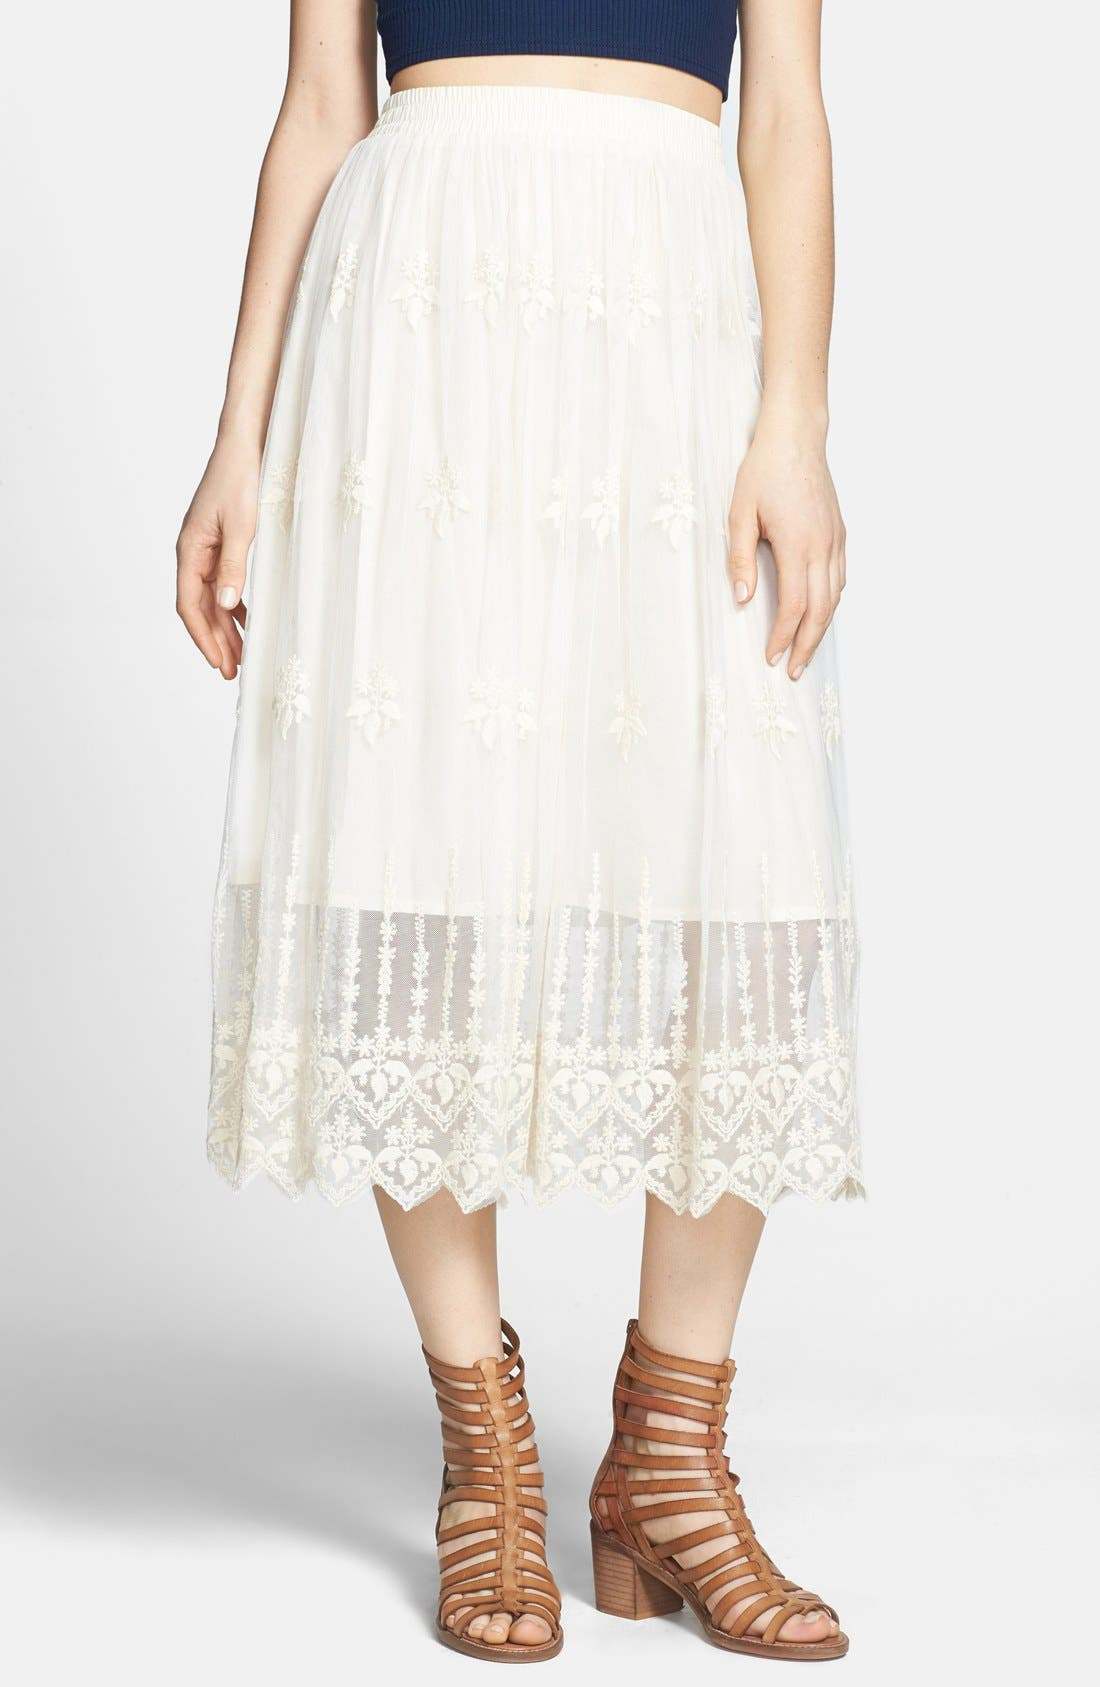 Alternate Image 1 Selected - ASTR Embroidered Lace Midi Skirt